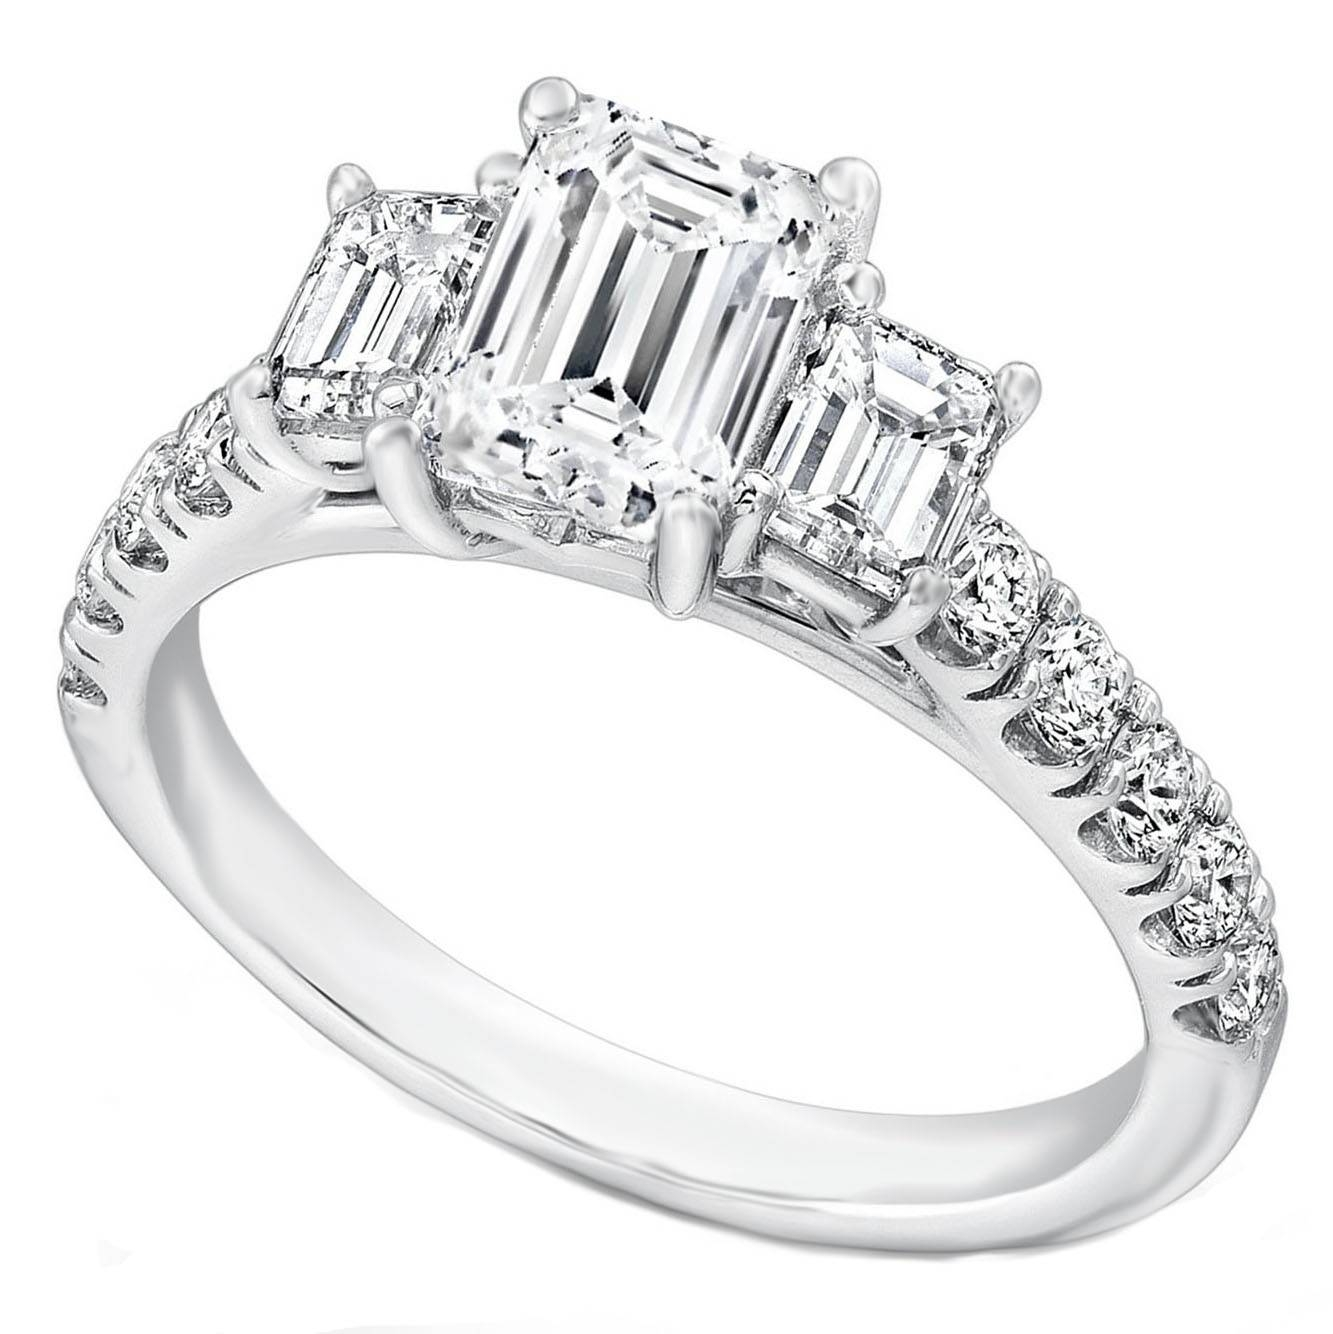 Engagement Ring  Three Stone Emerald Cut Diamond Cathedral Regarding White Gold 3 Stone Engagement Rings (View 8 of 15)